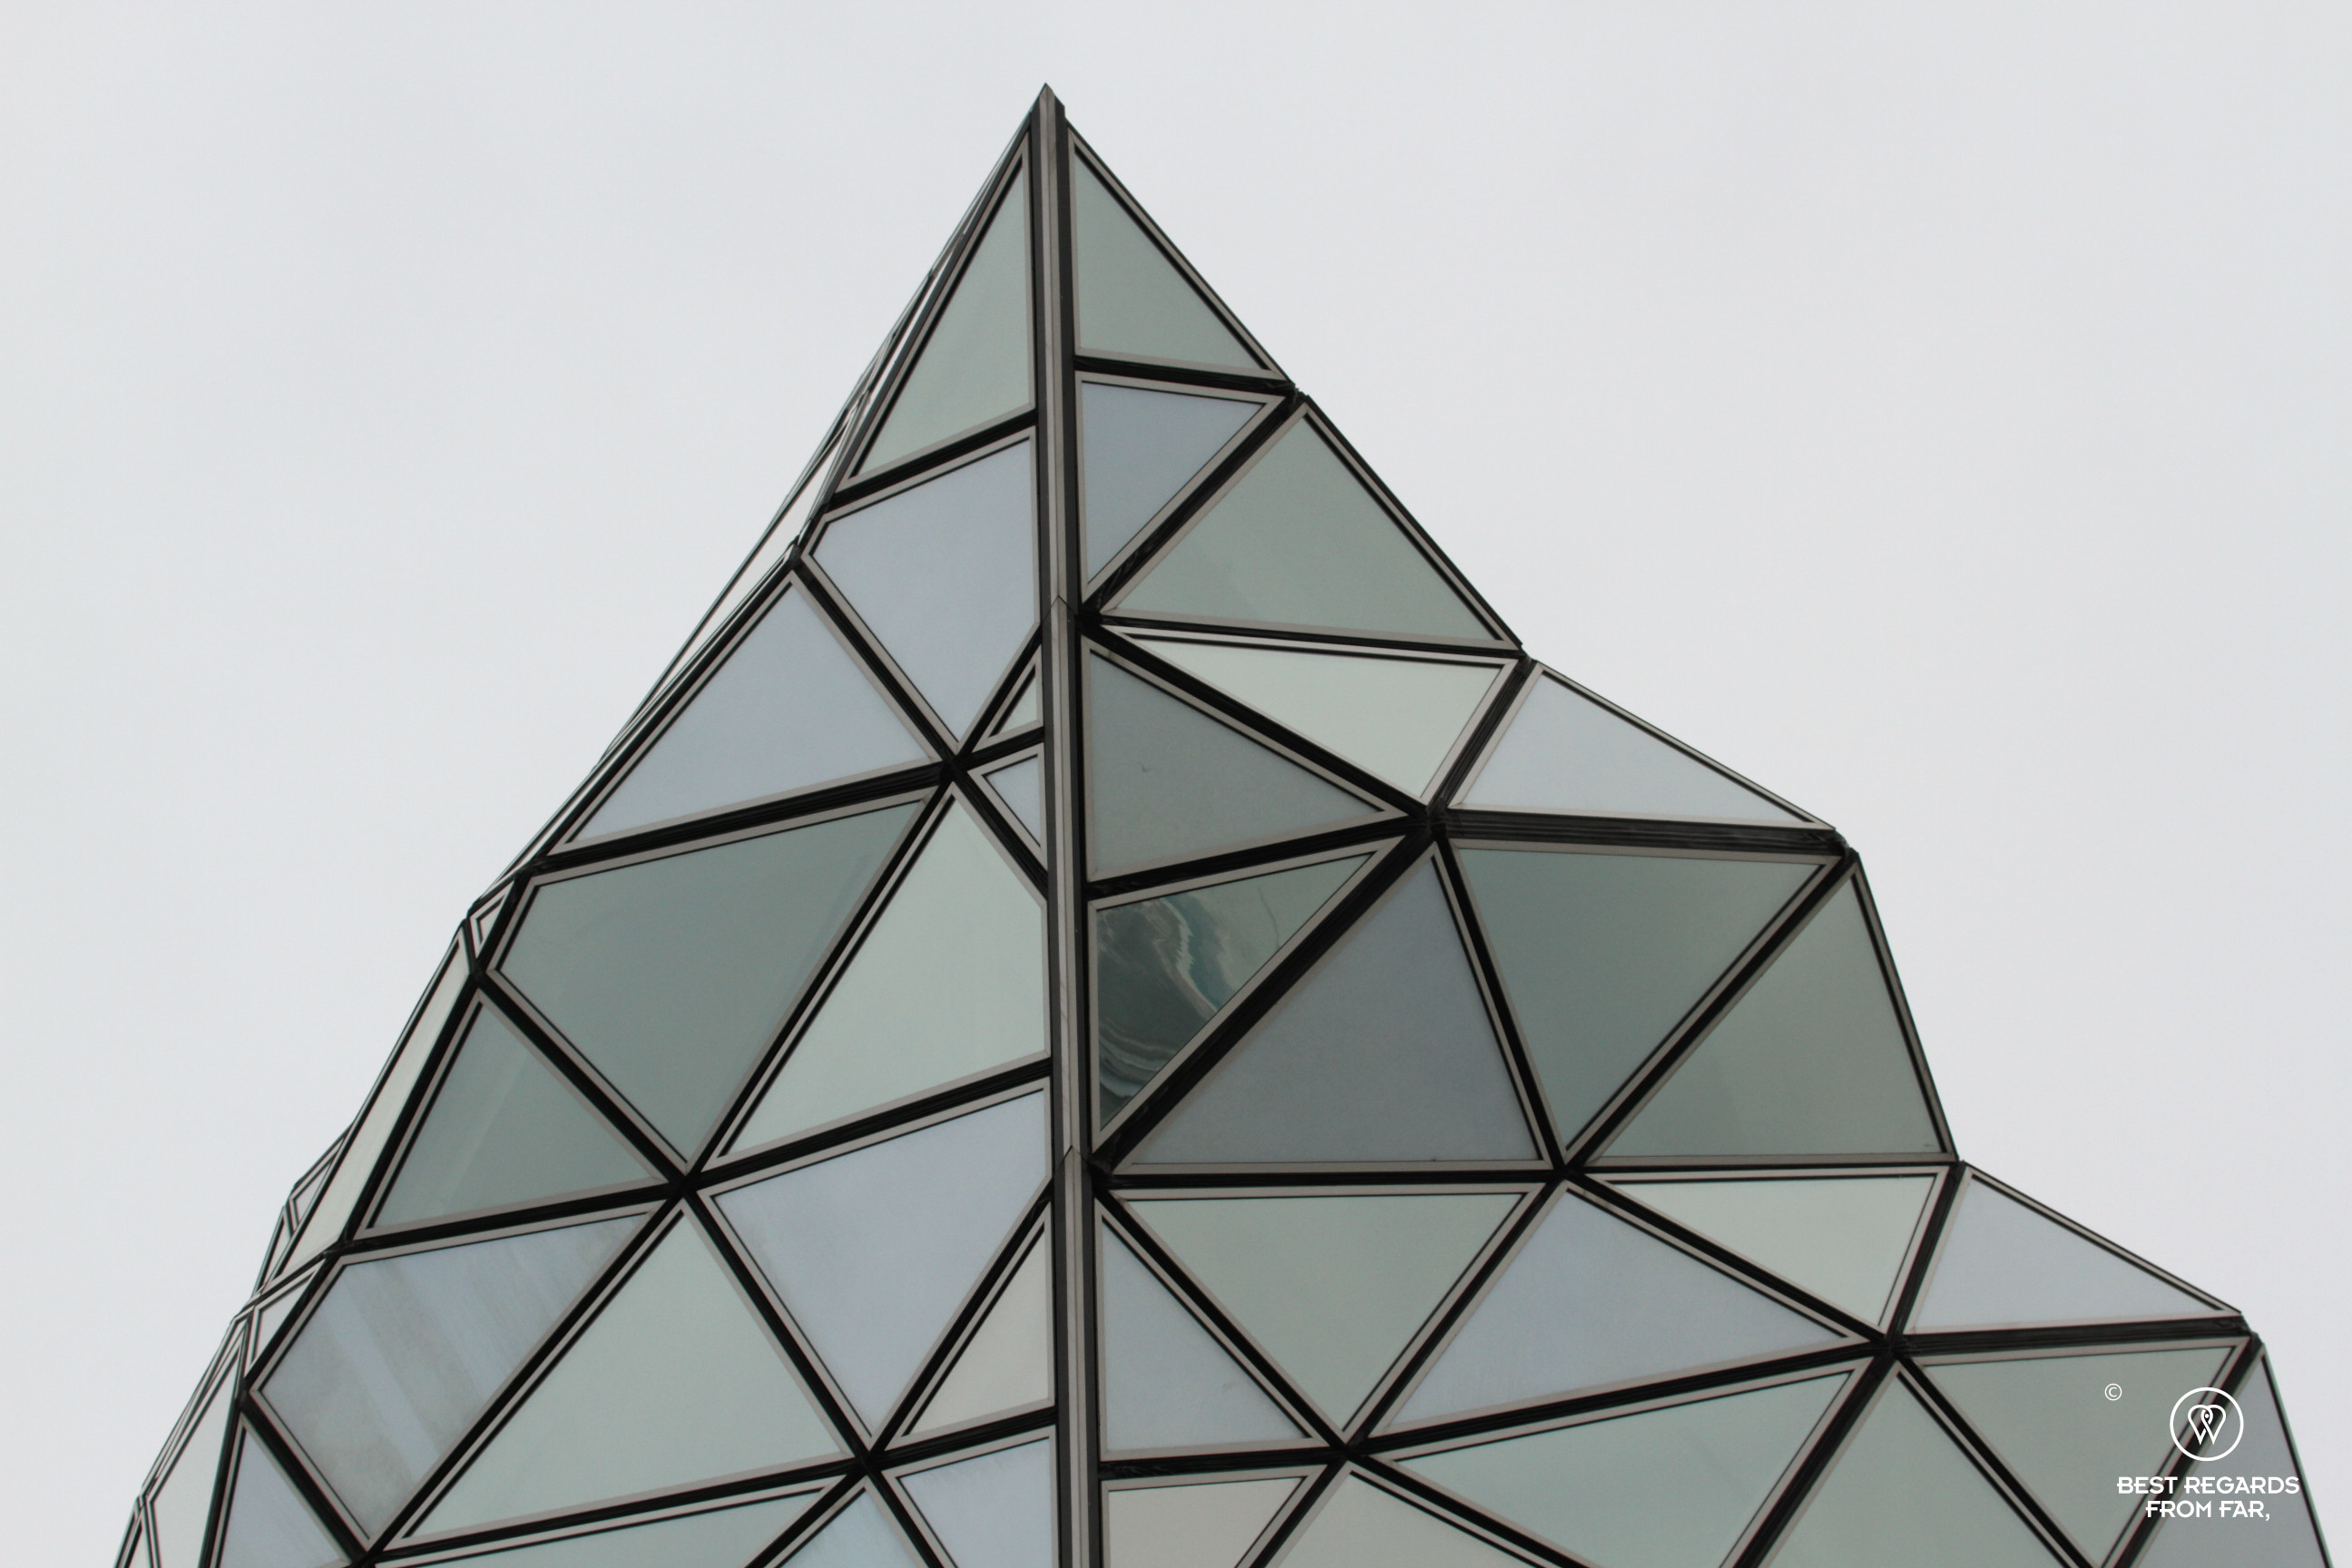 Close-up of the port house in Antwerp with is diamond-shaped roof